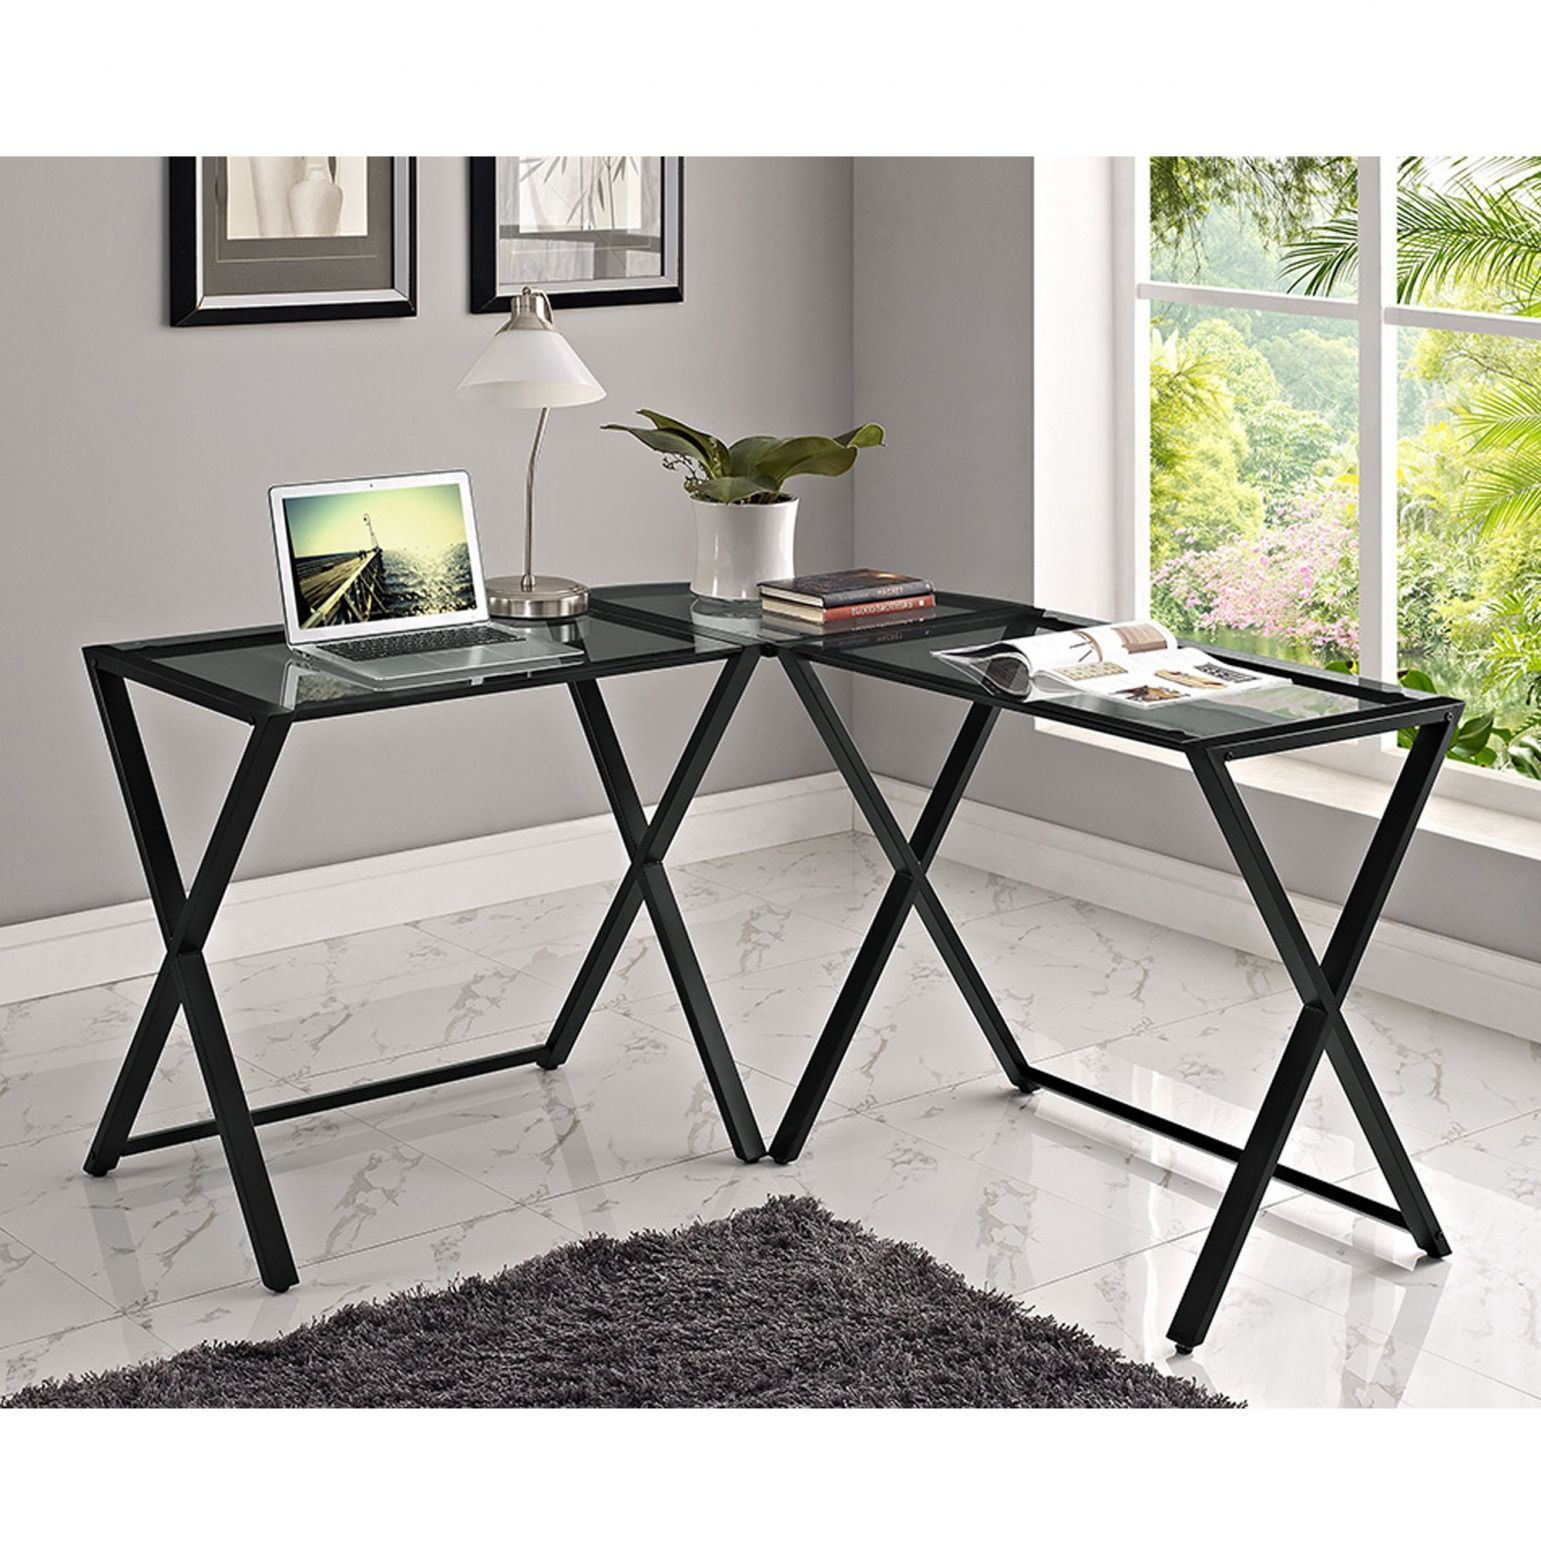 2019 Glass And Metal Corner Computer Desk Black  Best